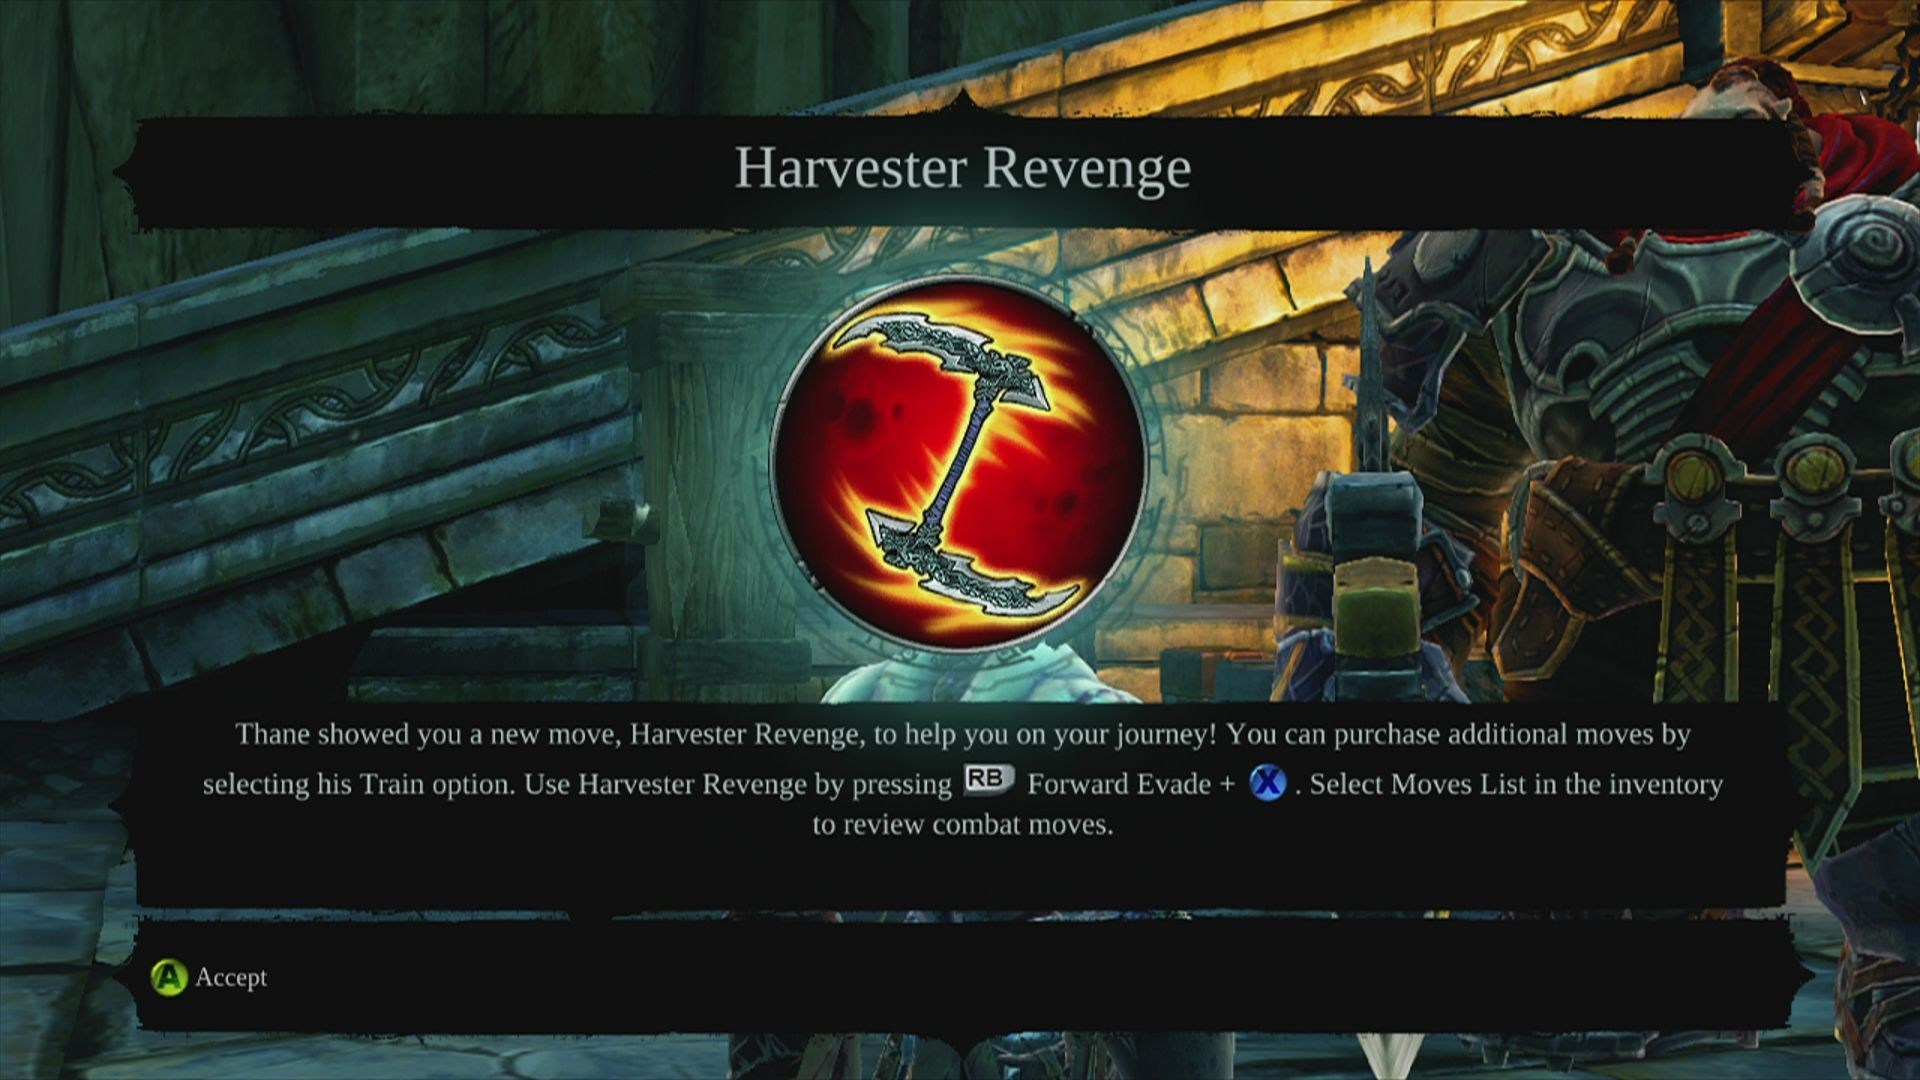 Darksiders II Xbox 360 Besides items, you can also buy moves from some trainers